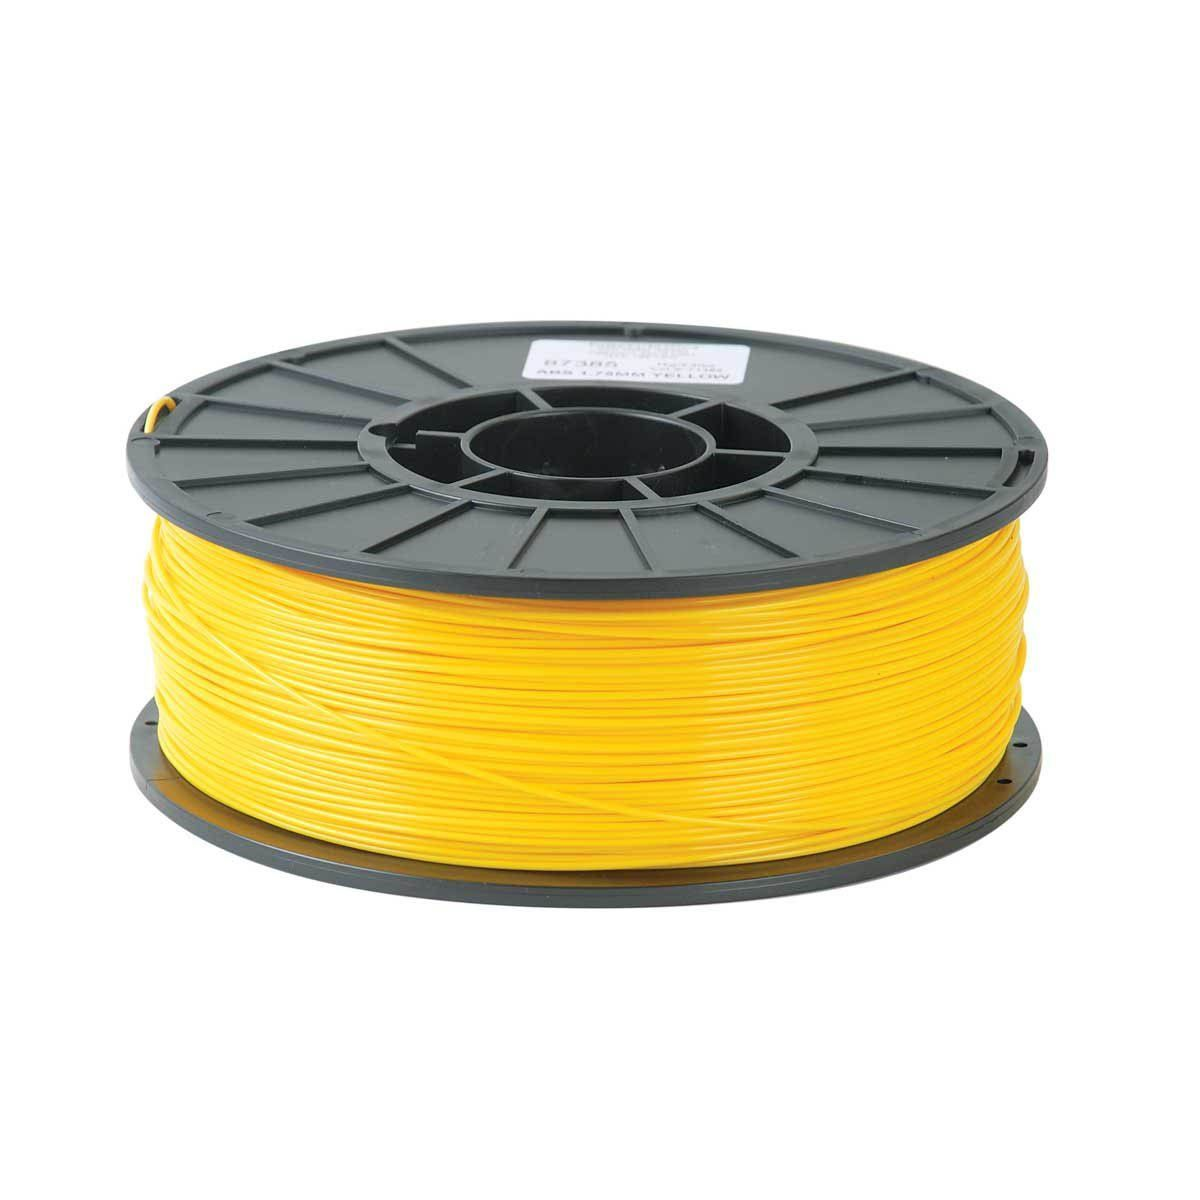 3d Printers & Supplies Computers/tablets & Networking Formfutura Hdglass Fluor Yellow Stained Petg Filament 1.75mm 750g Choice Materials